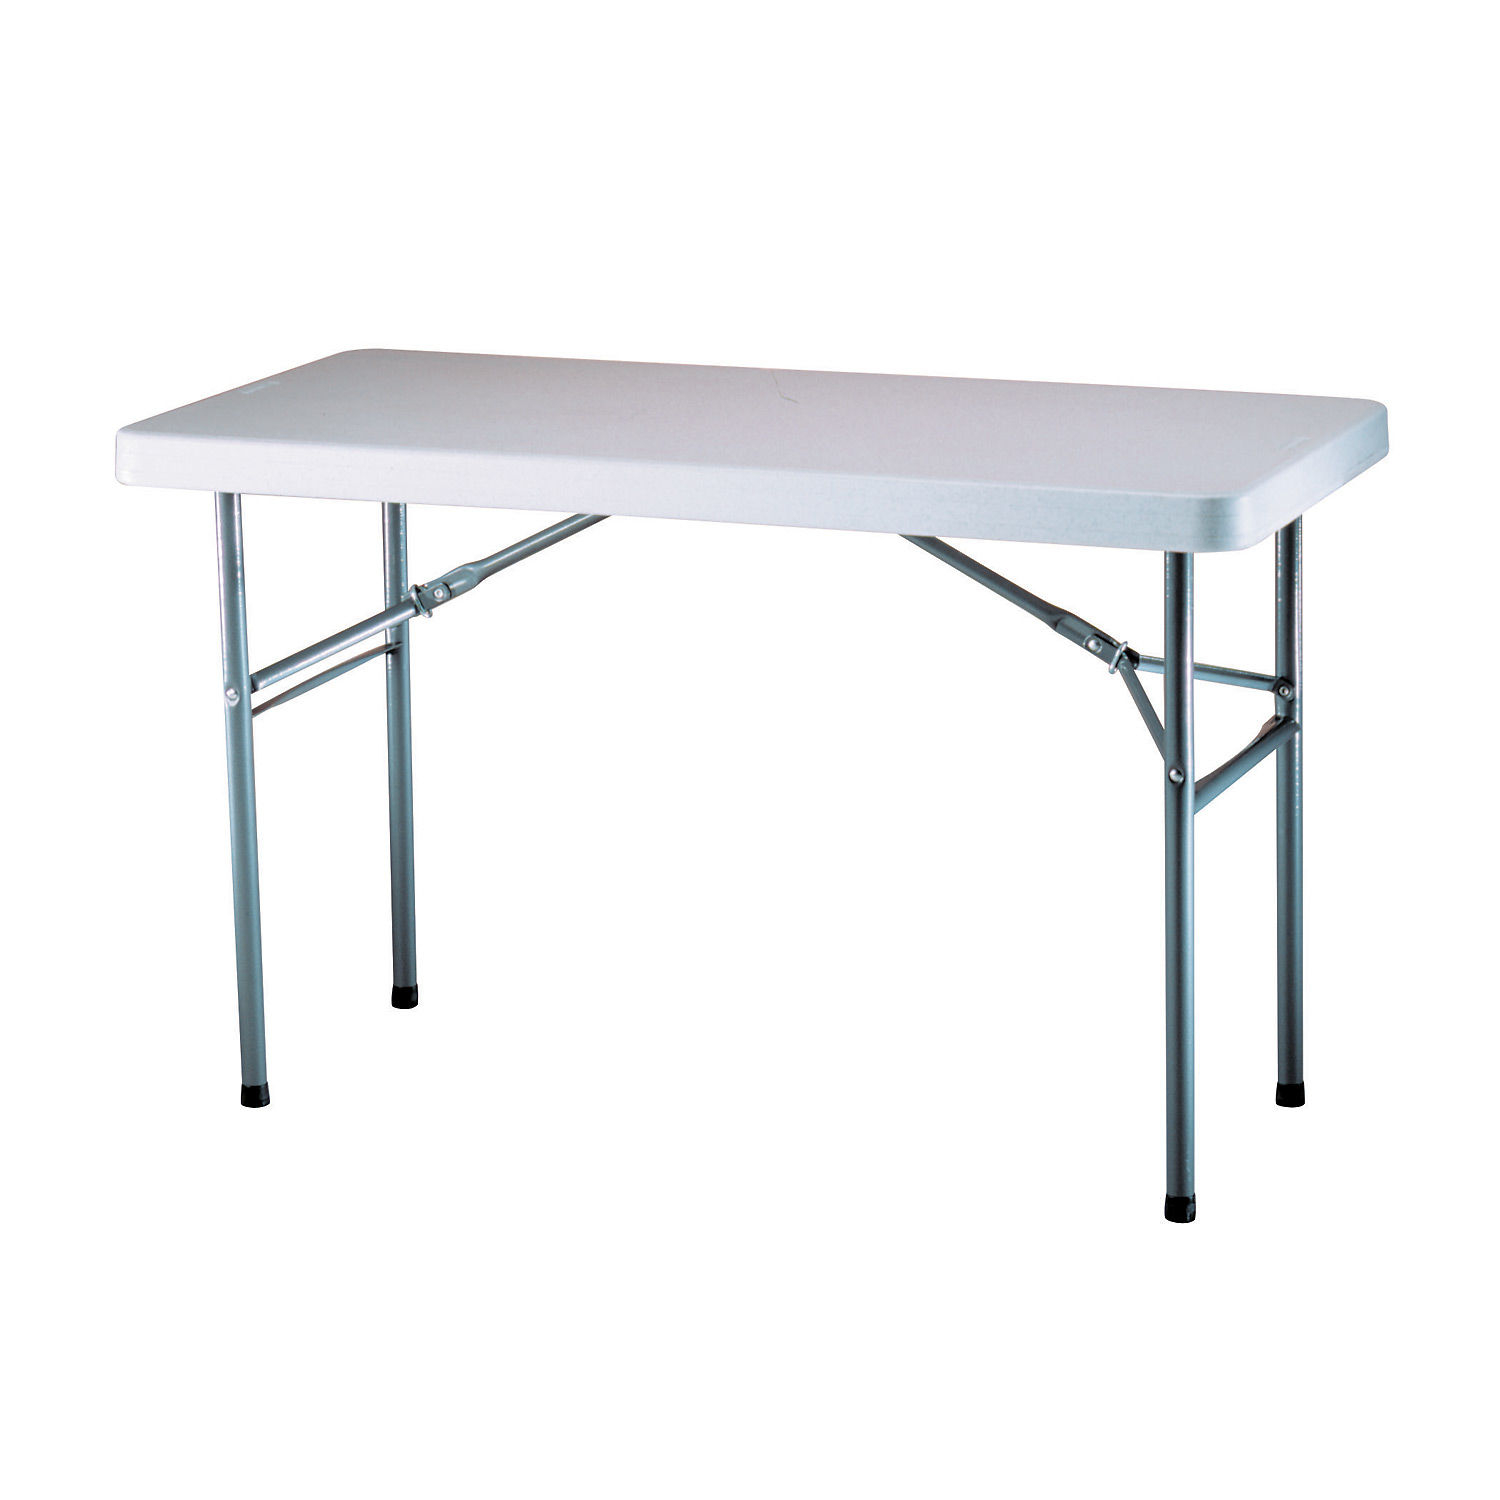 Tables Folding Tables Lifetime174 Adjustable Height inside sizing 1500 X 1500